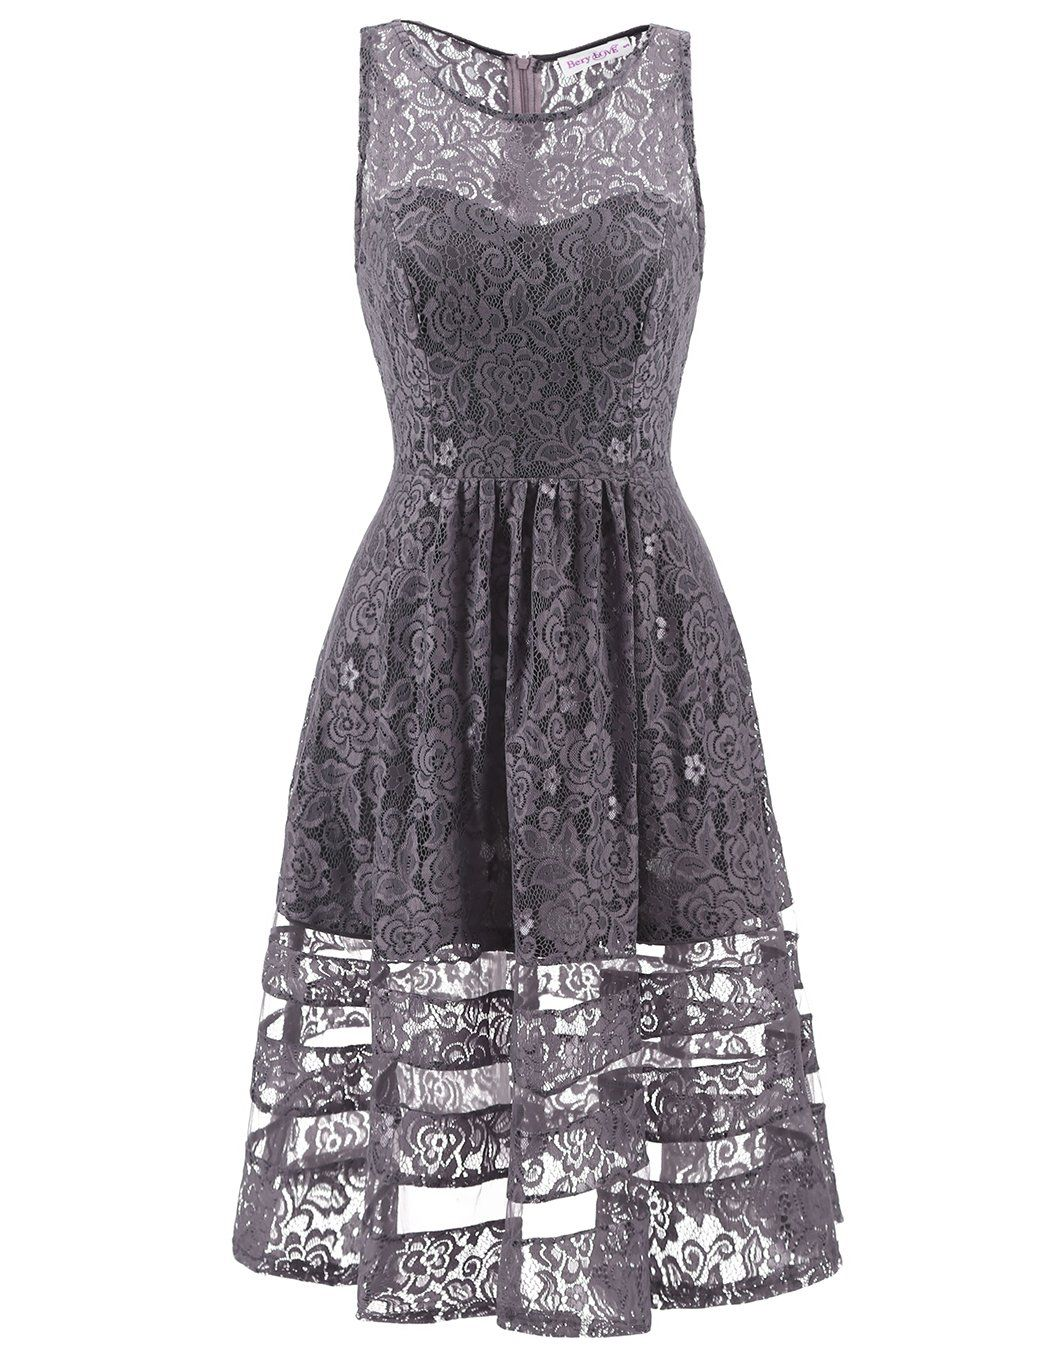 Berylove womens lace see through skirt short cocktail party dress